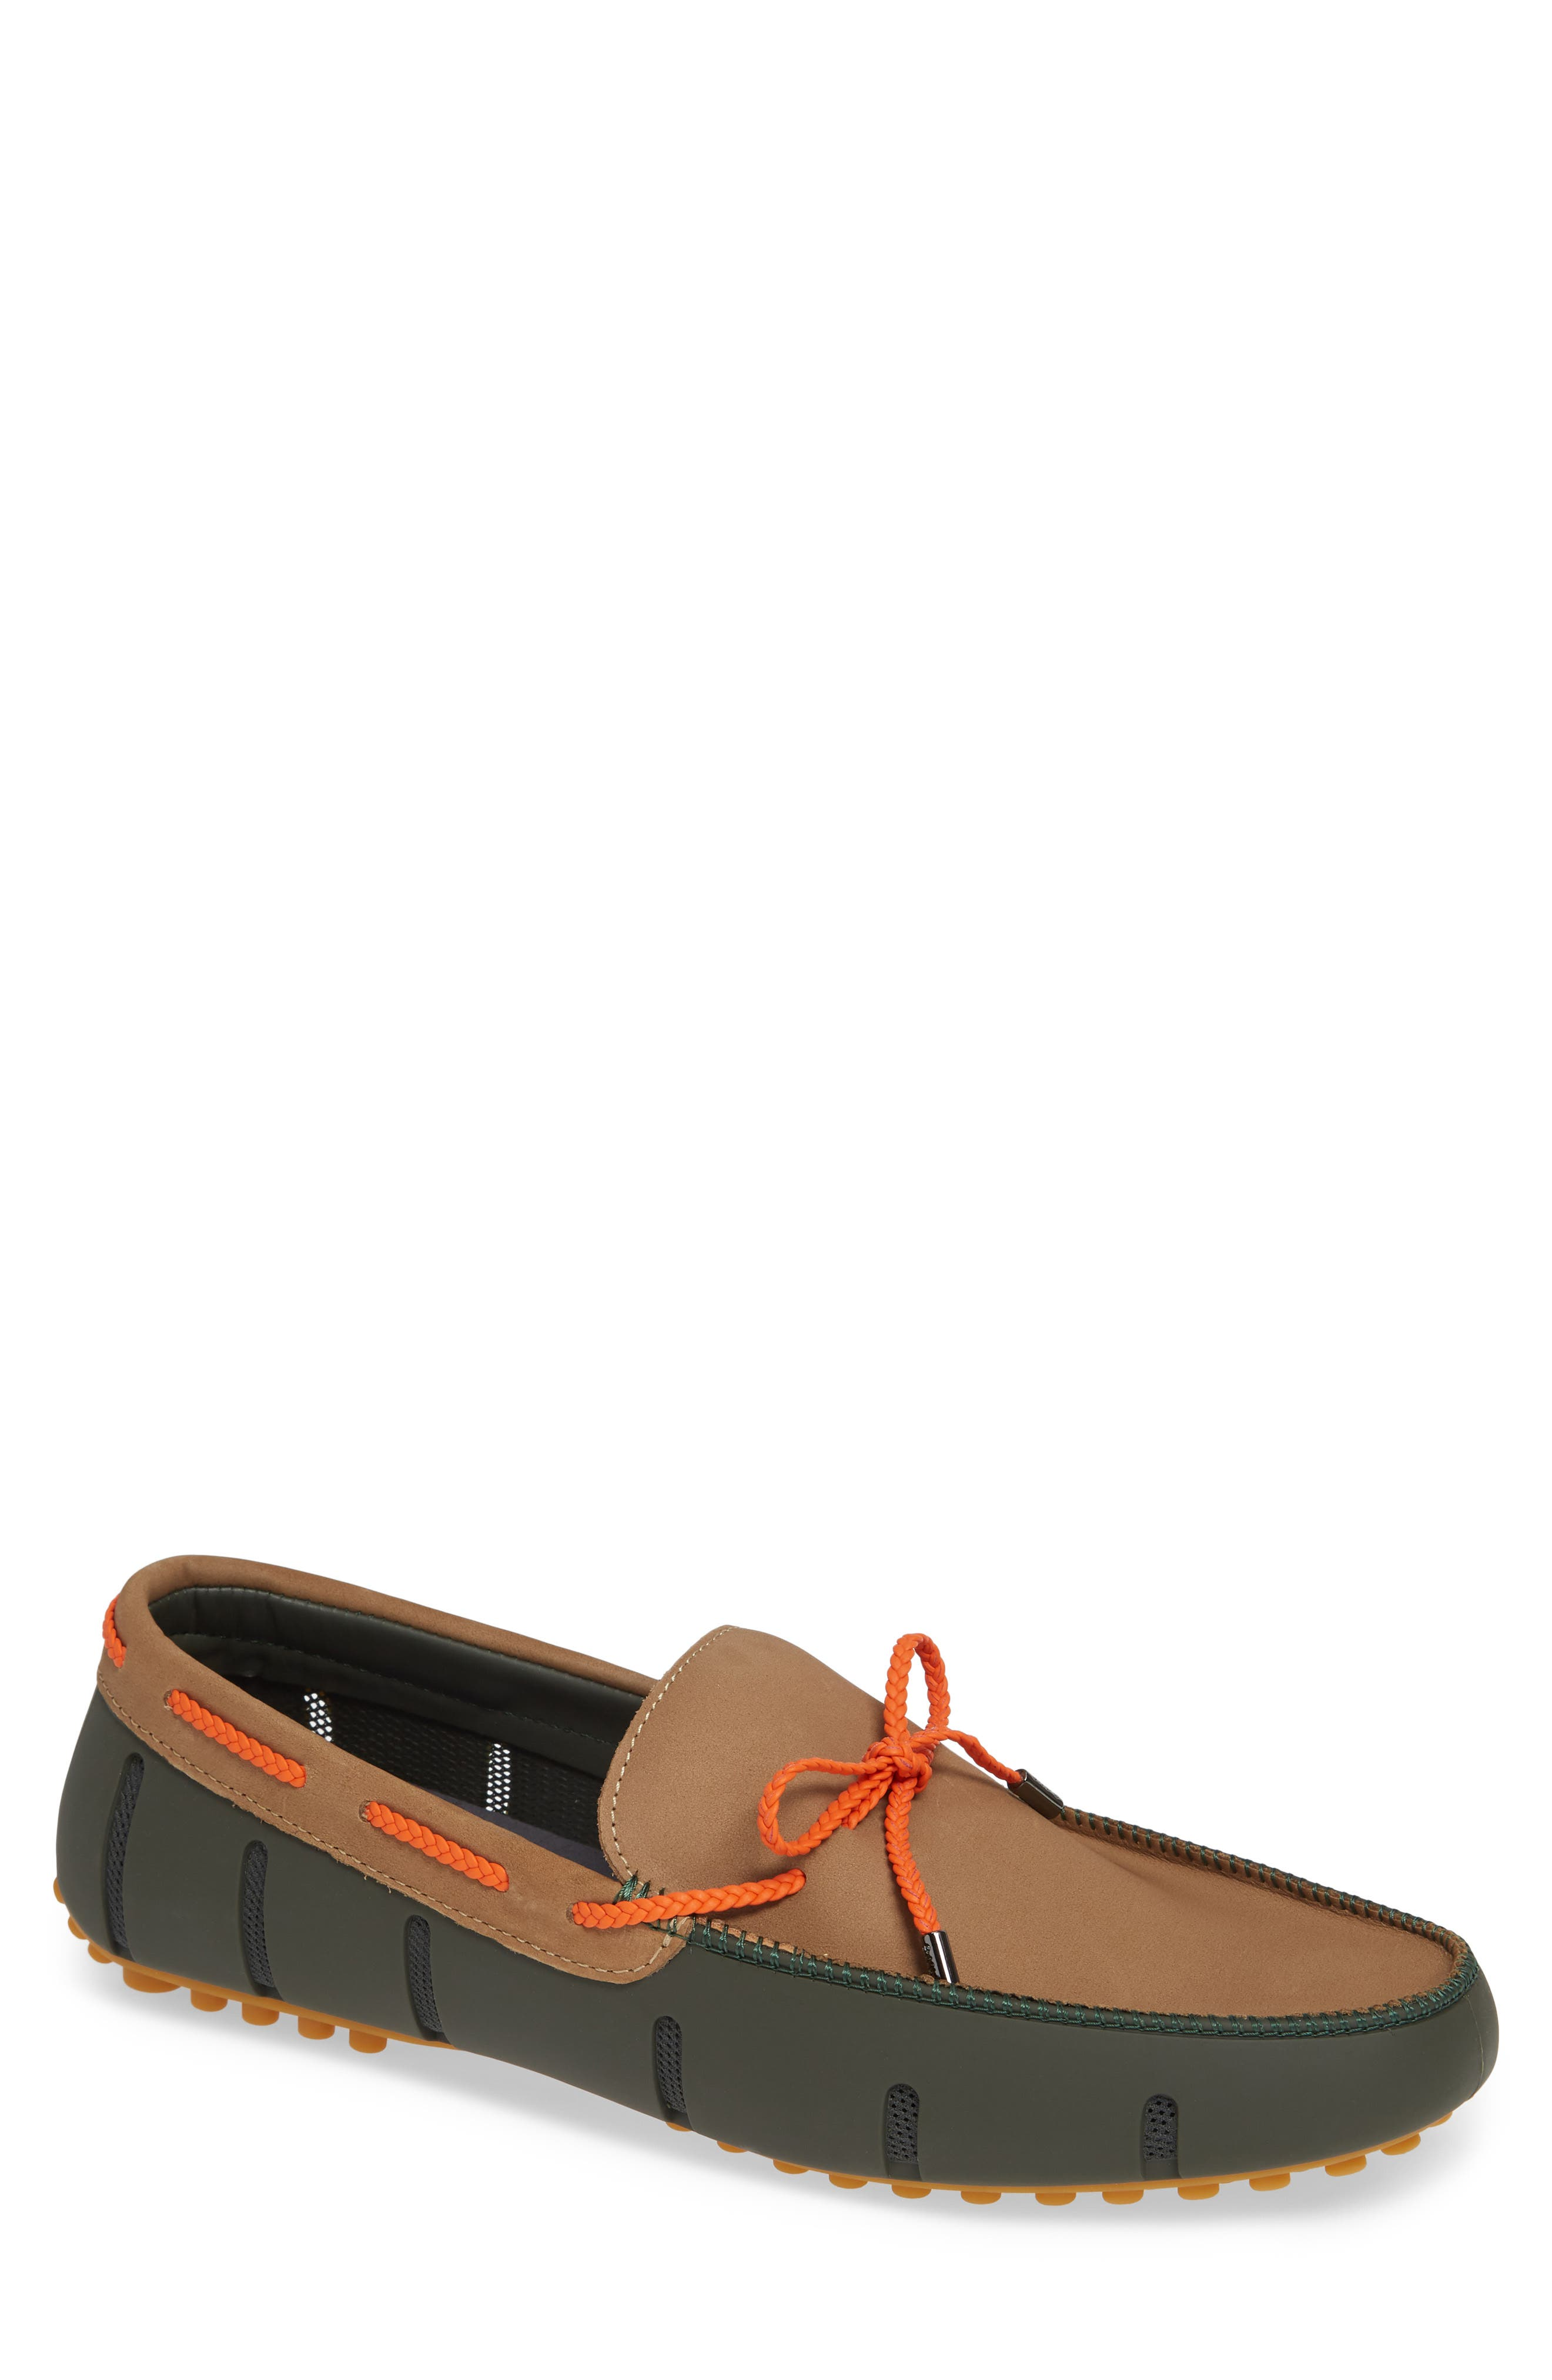 SWIMS,                             Lux Driving Loafer,                             Main thumbnail 1, color,                             OLIVE/ GAUCHO/ GUM